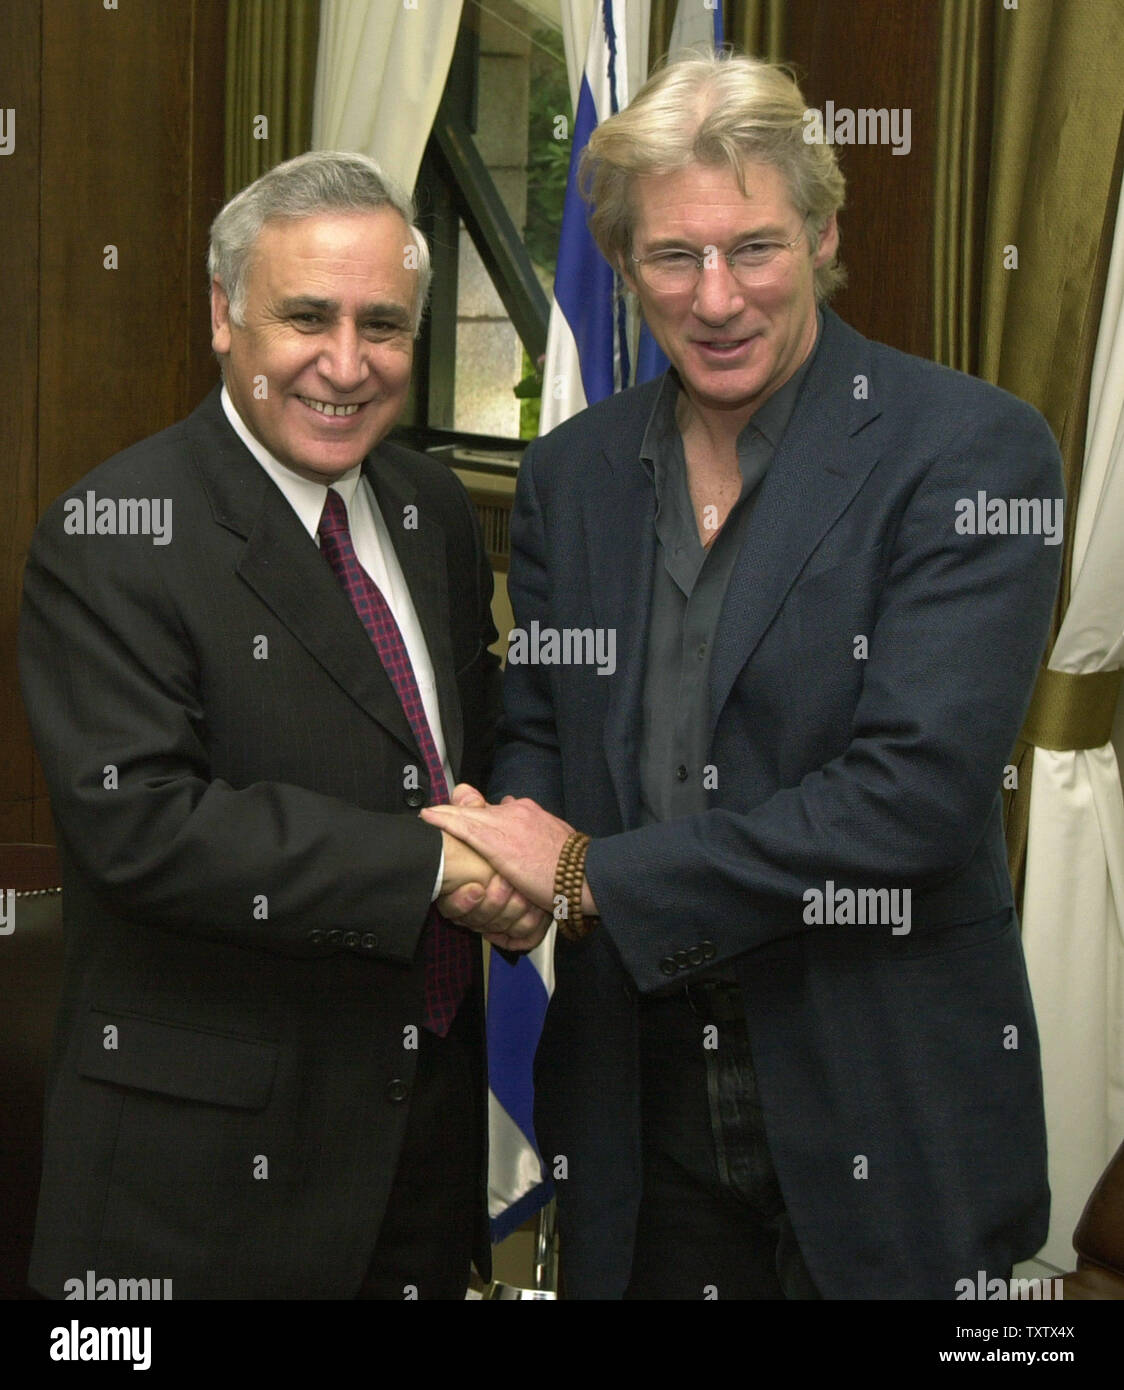 Left, Israeli President Moshe Katsav shakes hands with  Richard Gere in his residence in Jerusalem, Israel, December 10, 2003. Gere is on a private visit to Israel and the Palestinian territories. (UPI Photo/Debbie Hill) - Stock Image